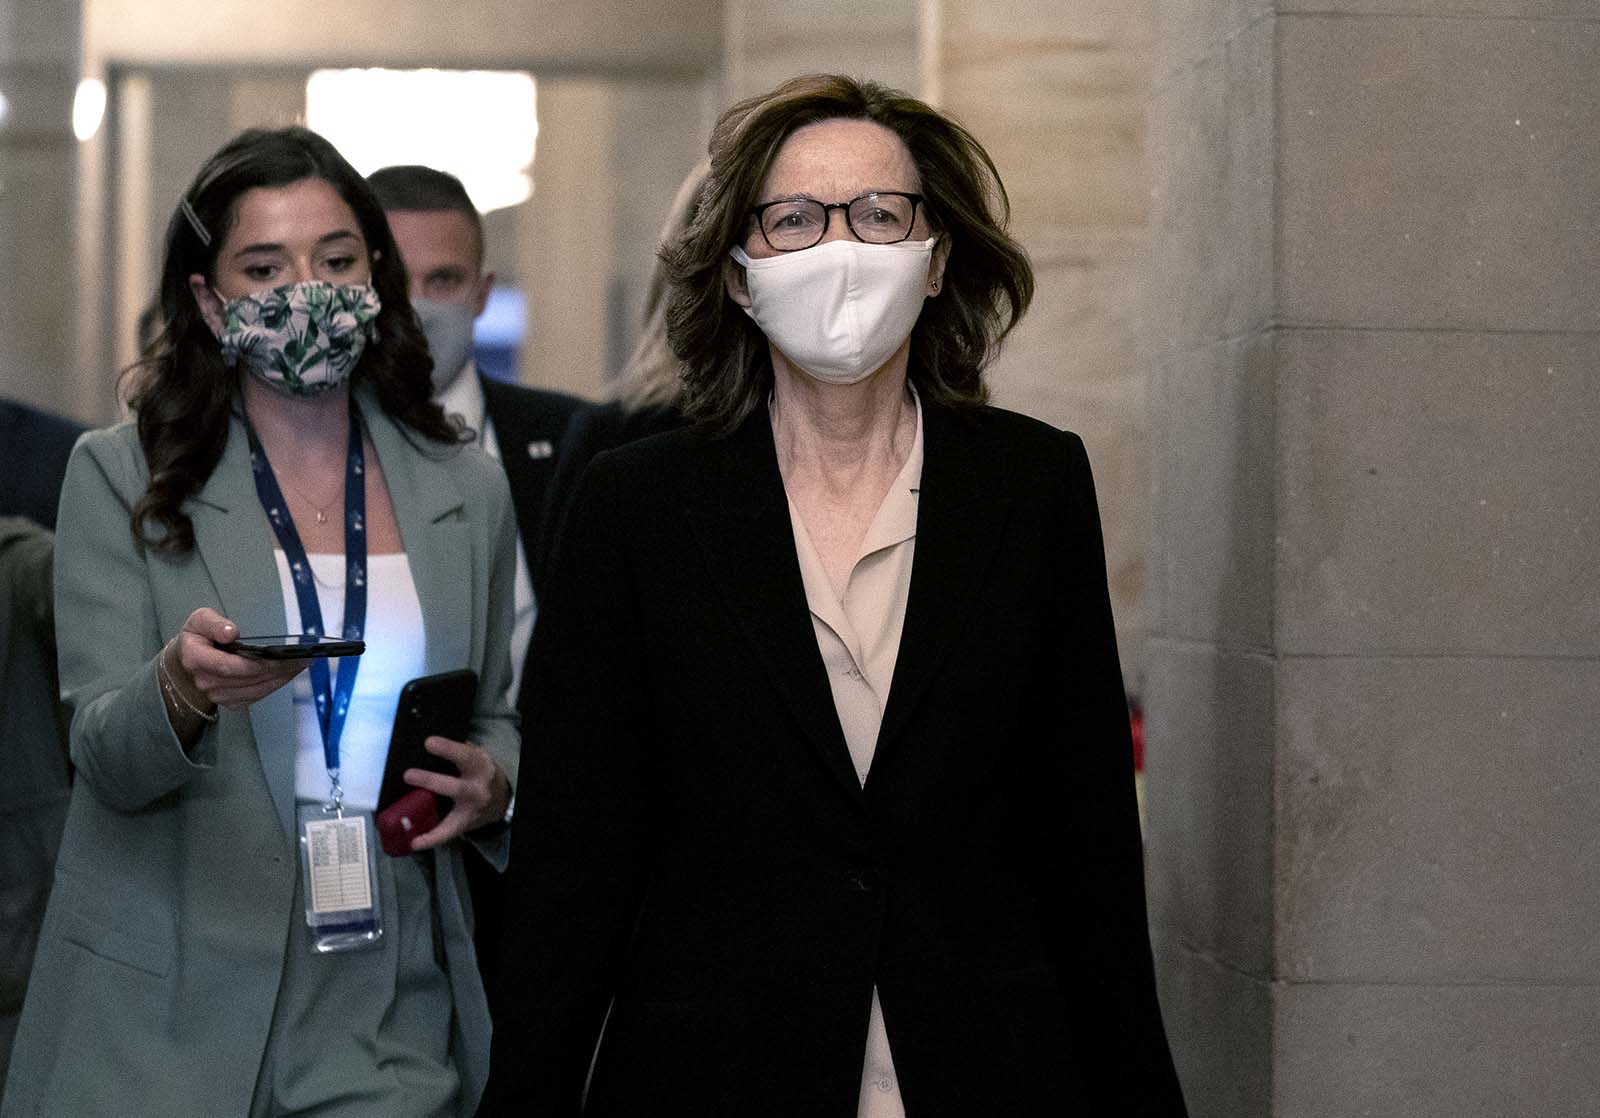 Gina Haspel, director of the Central Intelligence Agency wears a protective mask while arriving for a meeting with Senate Majority Leader Mitch McConnell, a Republican from Kentucky, not pictured, at the U.S. Capitol in Washington on Tuesday, November 10.